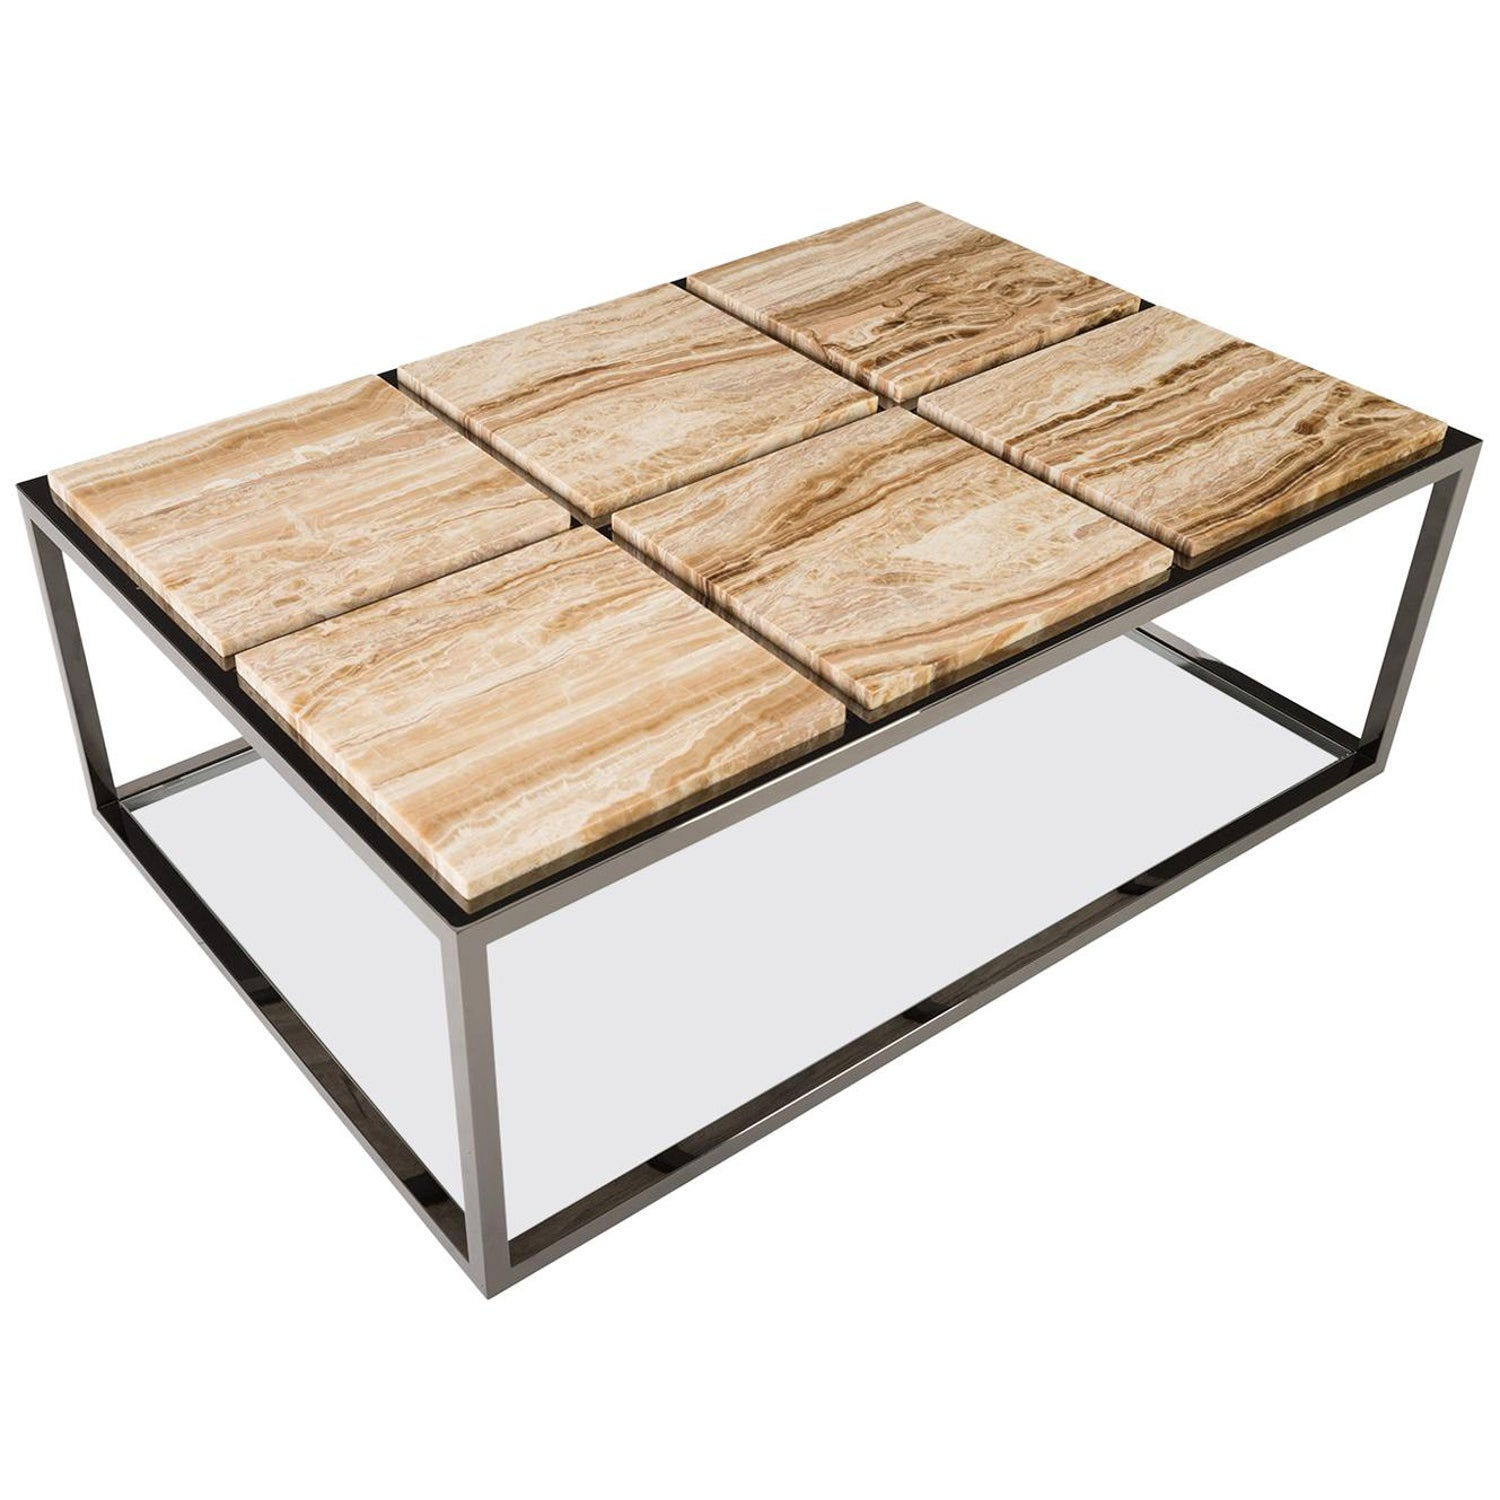 Stone Base Coffee Table.Six Panel Stone Rectangular Coffee Table With Black Nickel Base